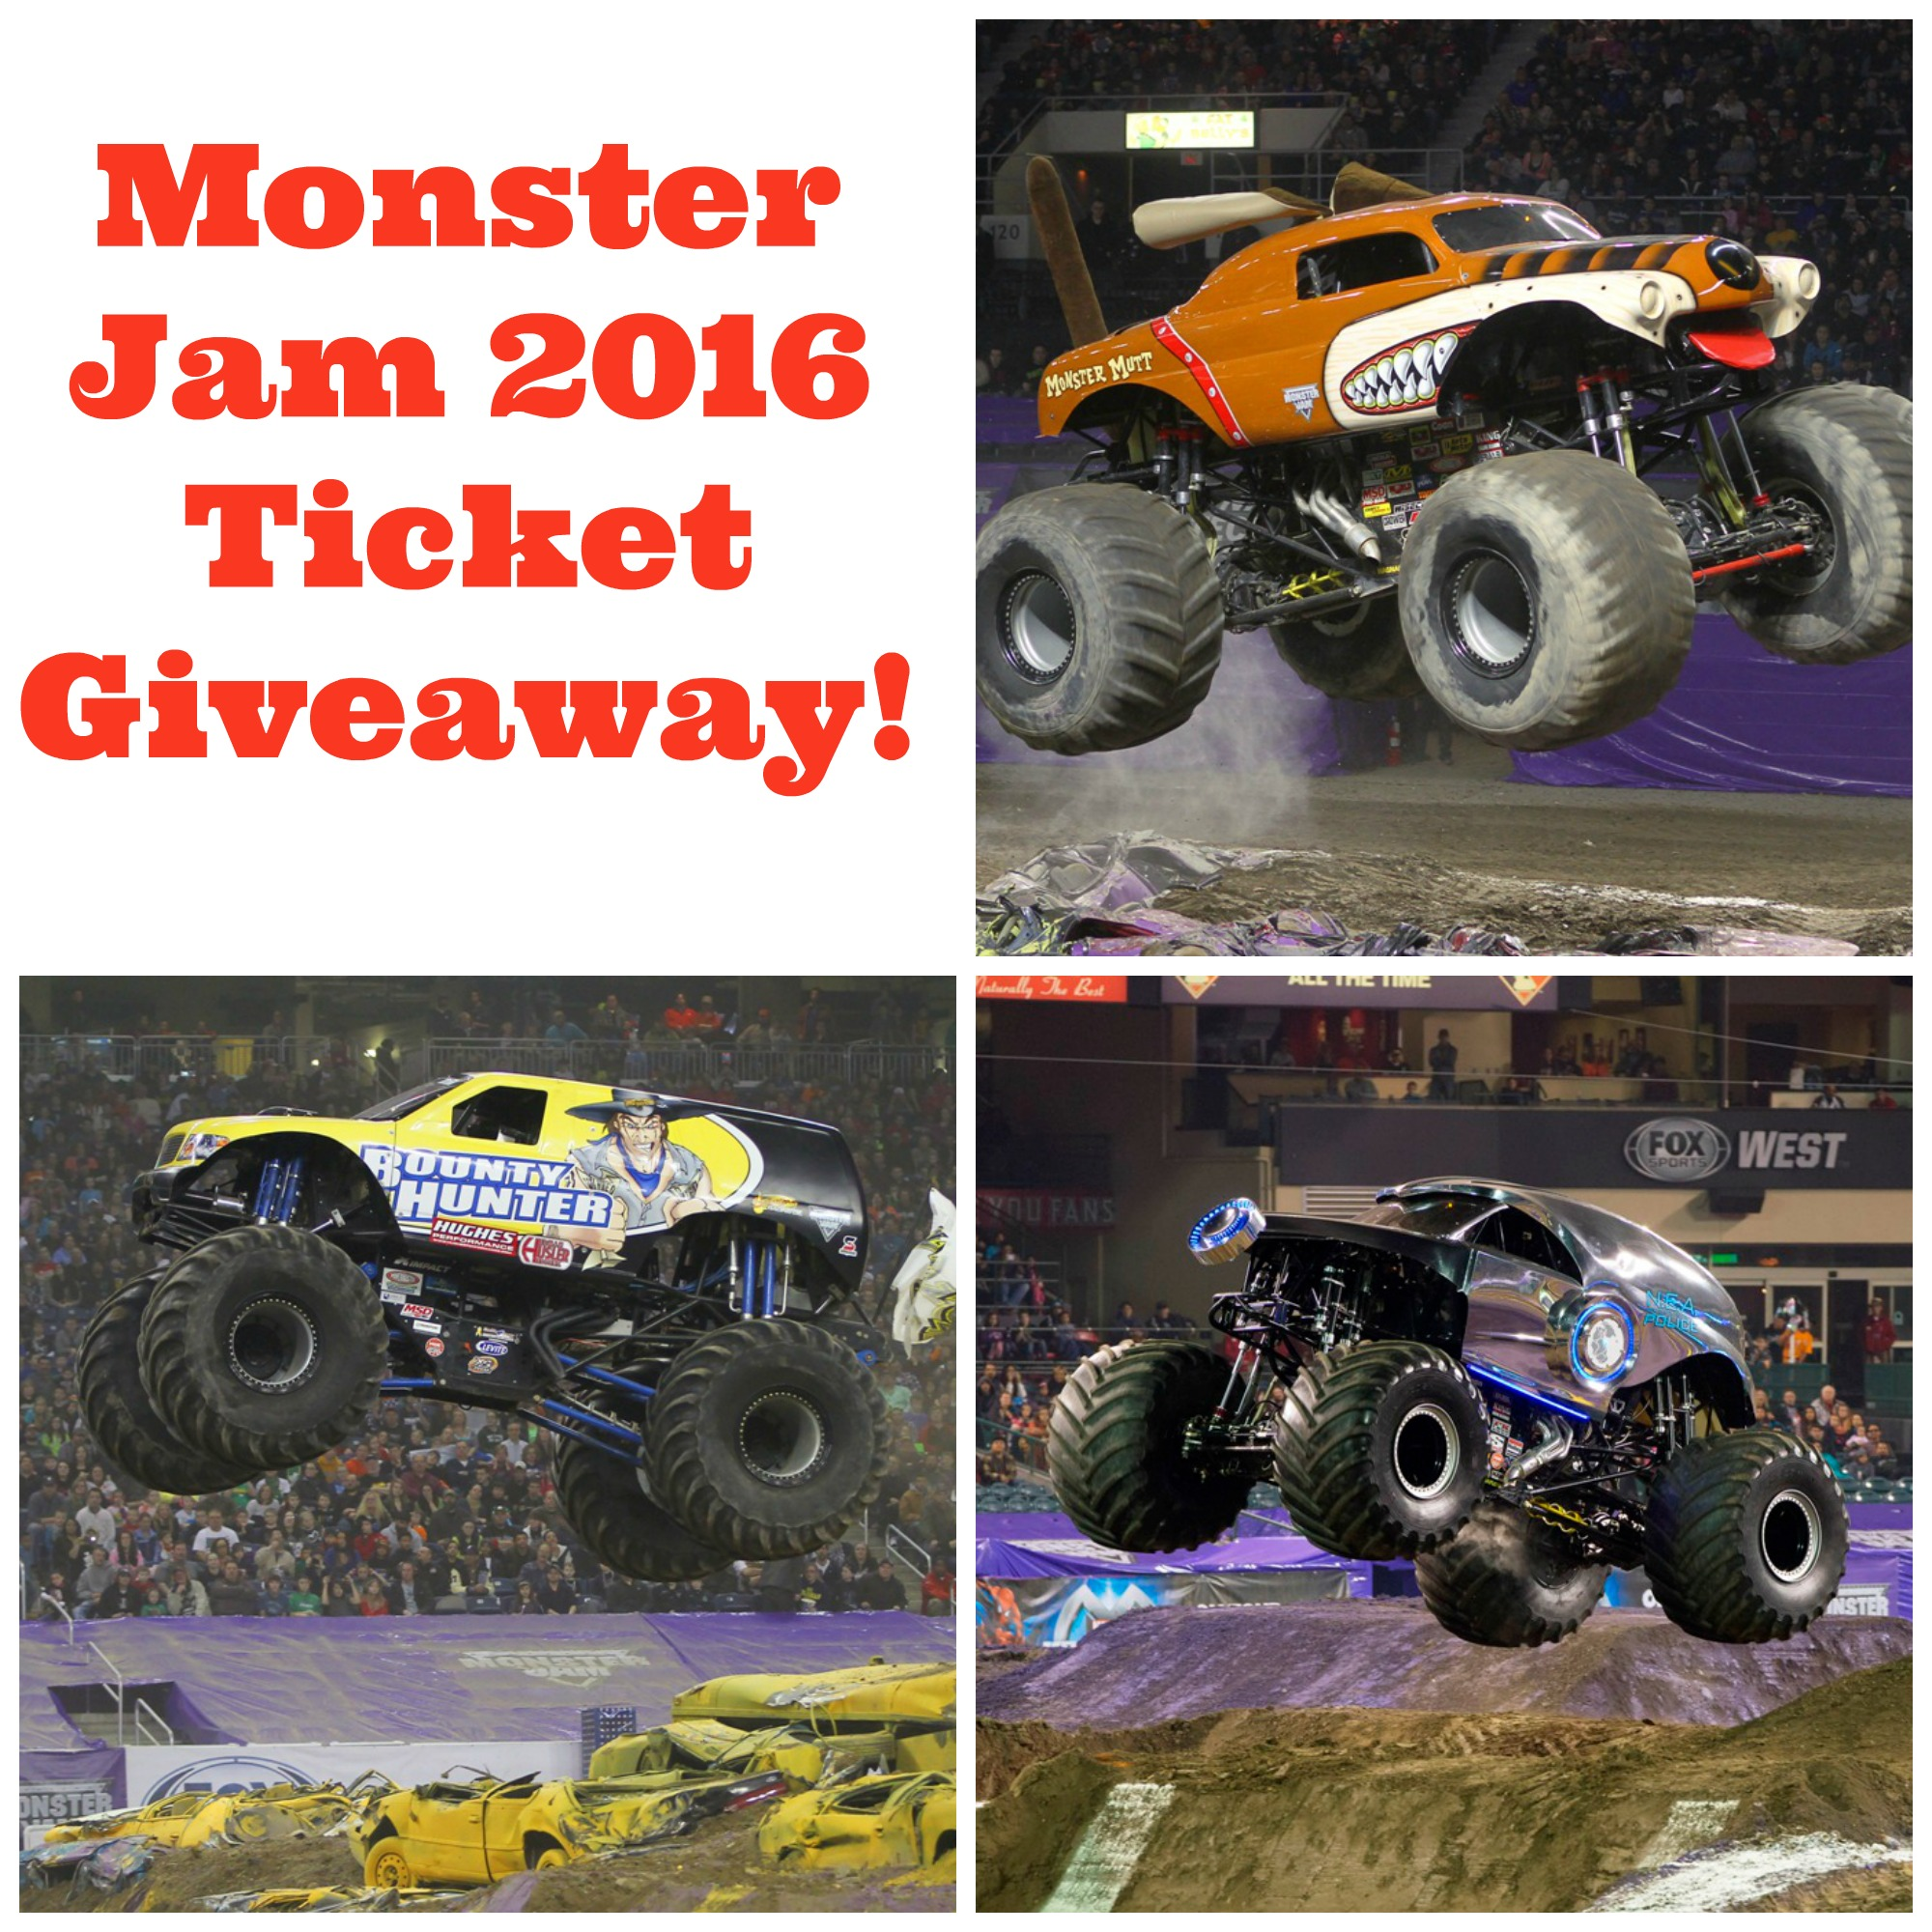 Monster Jam 2016 Kansas City Ticket Giveaway